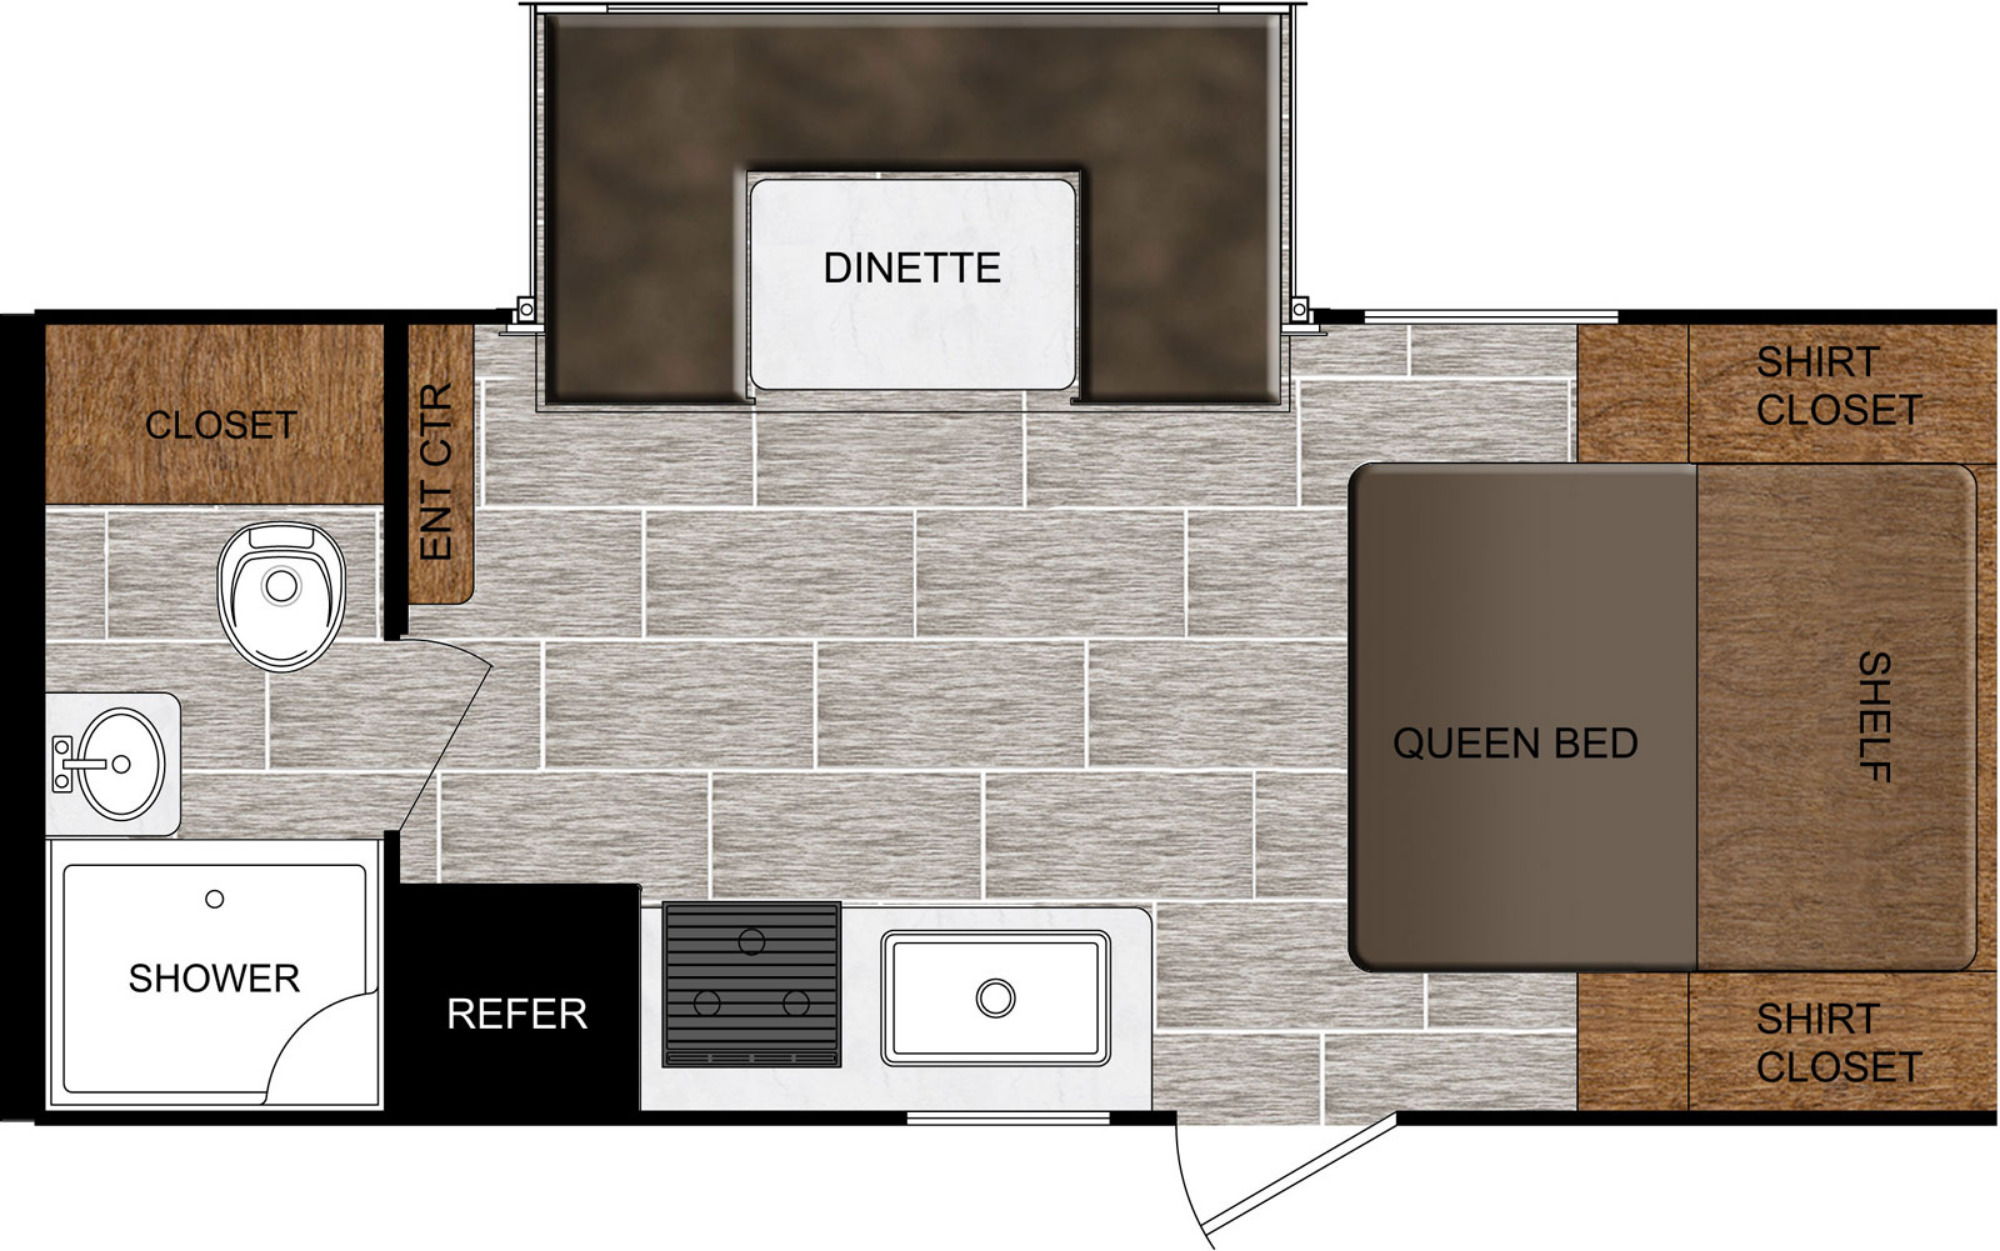 View Floor Plan for 2021 PRIME TIME TRACER 190RBSLE